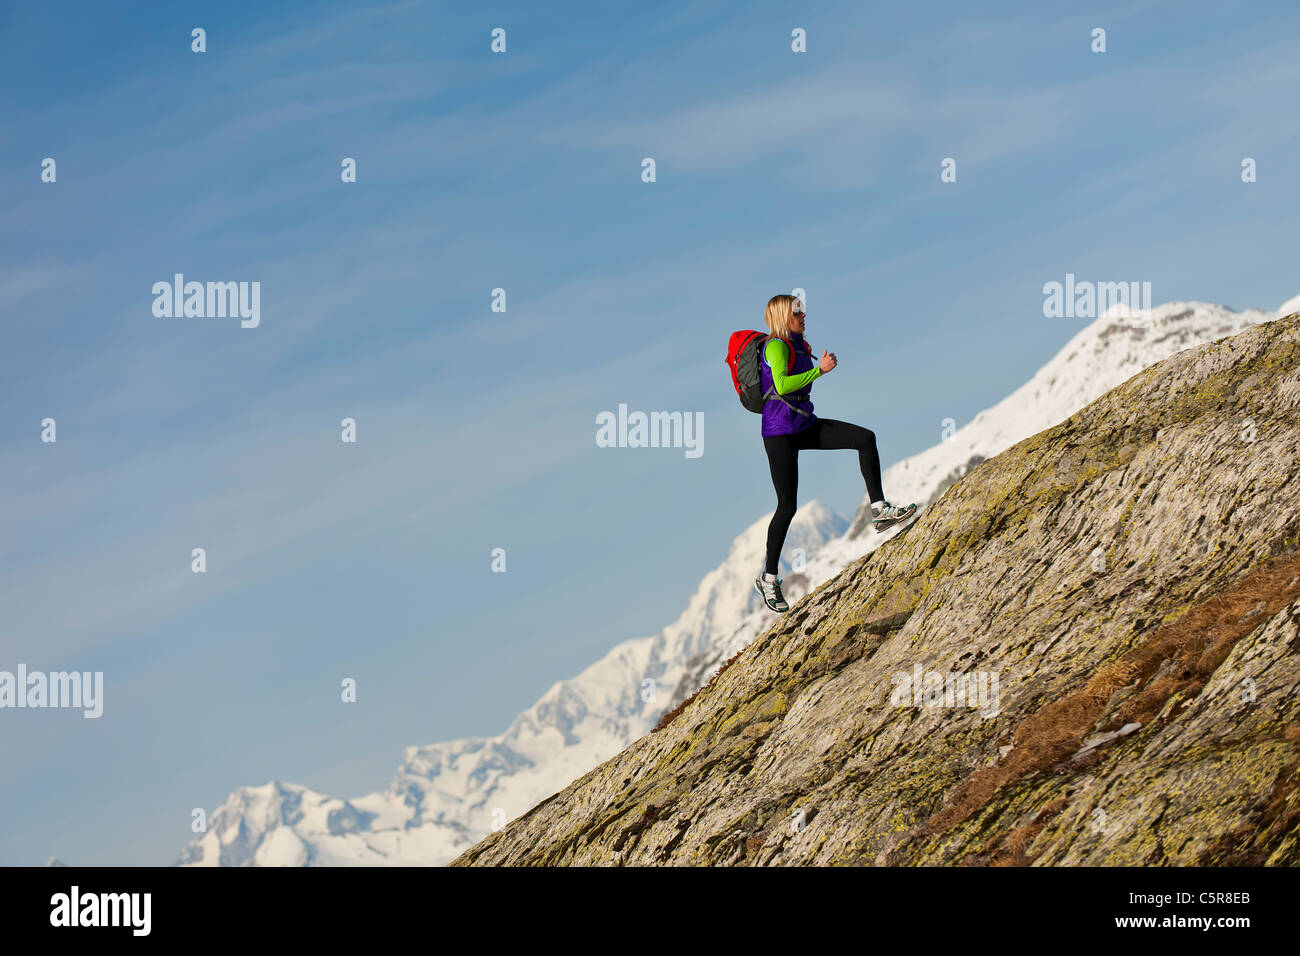 A runner runs up a steep mountain rock face at high altitude. - Stock Image